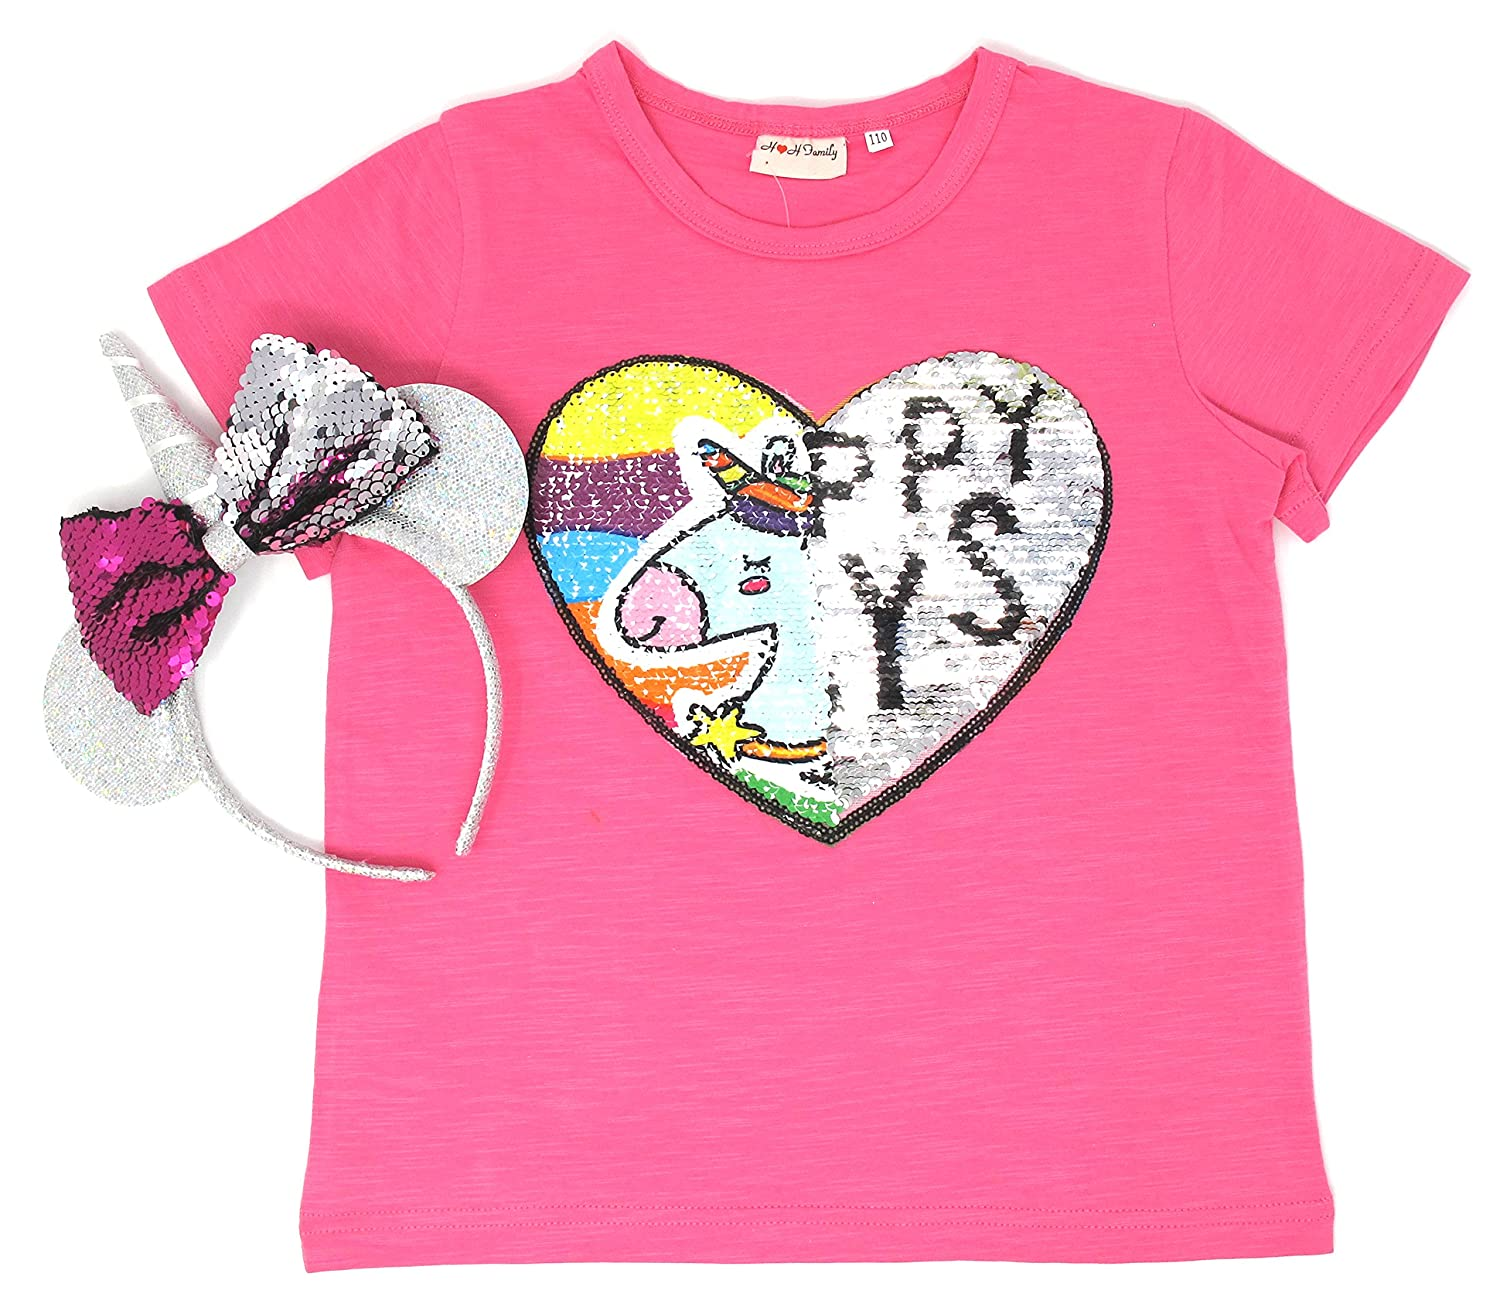 64dcafda Dress your little ones with our magical unicorn flip sequin shirt and flip  sequin headband (optional), and watch her transform to a cute adorable  unicorn.